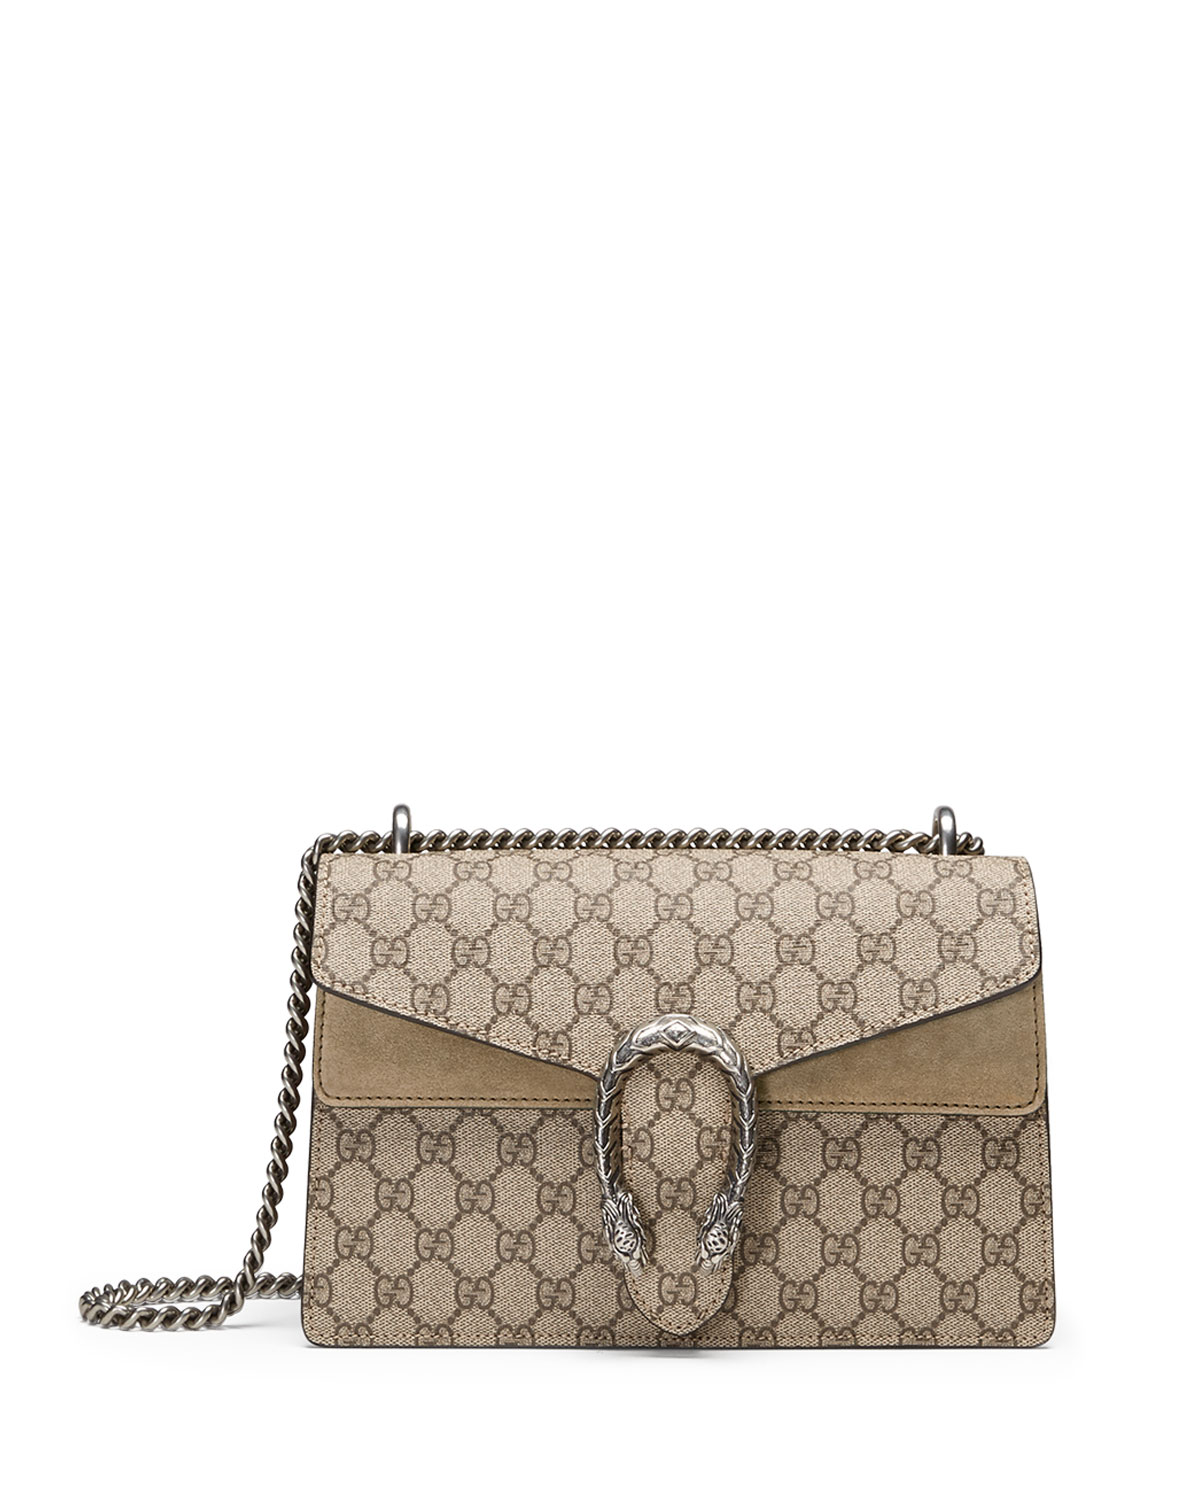 061e5c8d6e0a Gucci Dionysus GG Supreme Small Shoulder Bag | Neiman Marcus